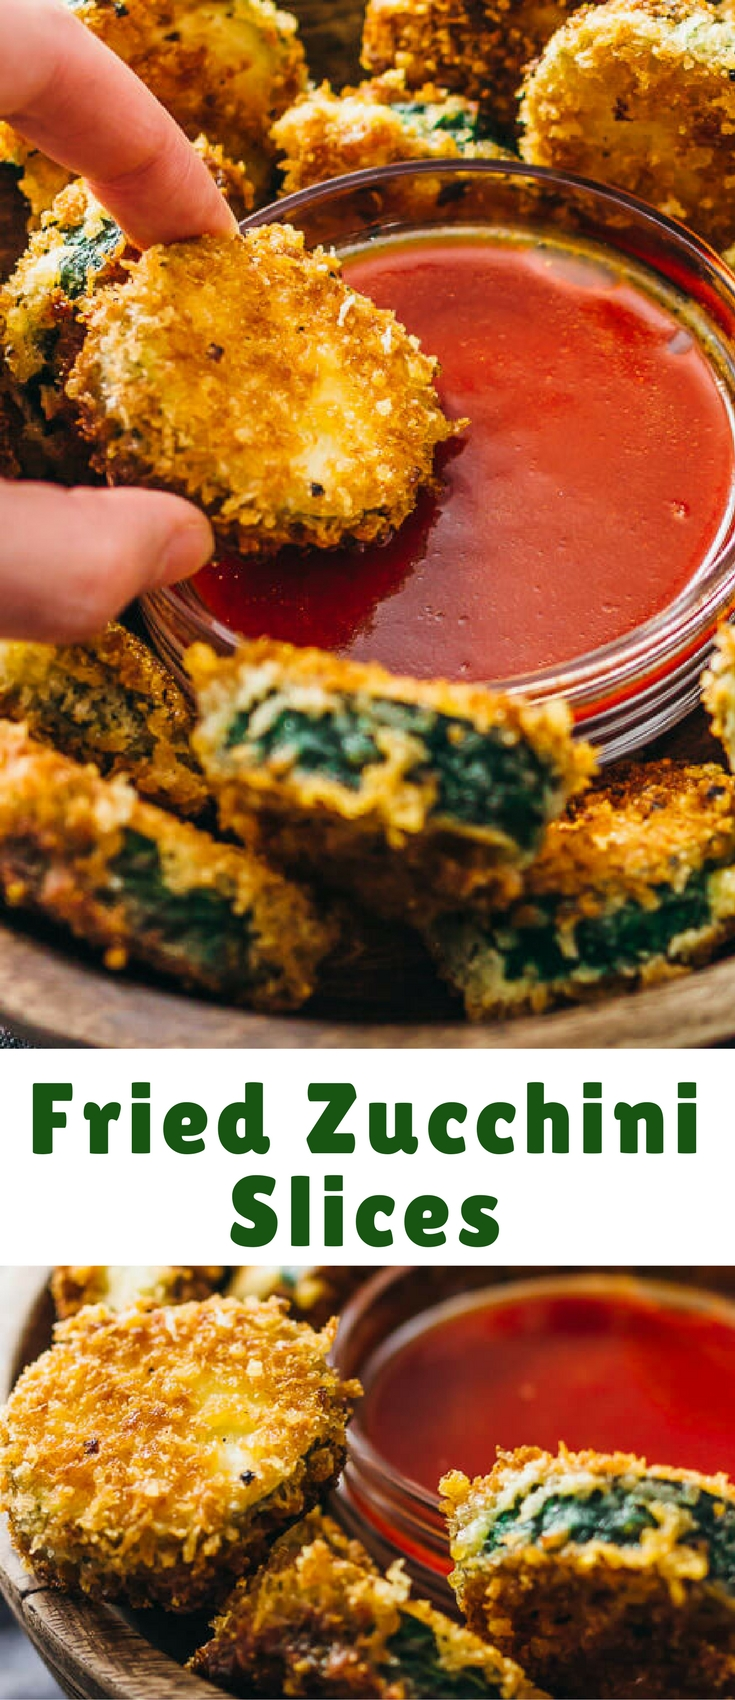 These pan-fried zucchini slices are a deliciously crunchy snack that goes well with a sweet and spicy dipping sauce.